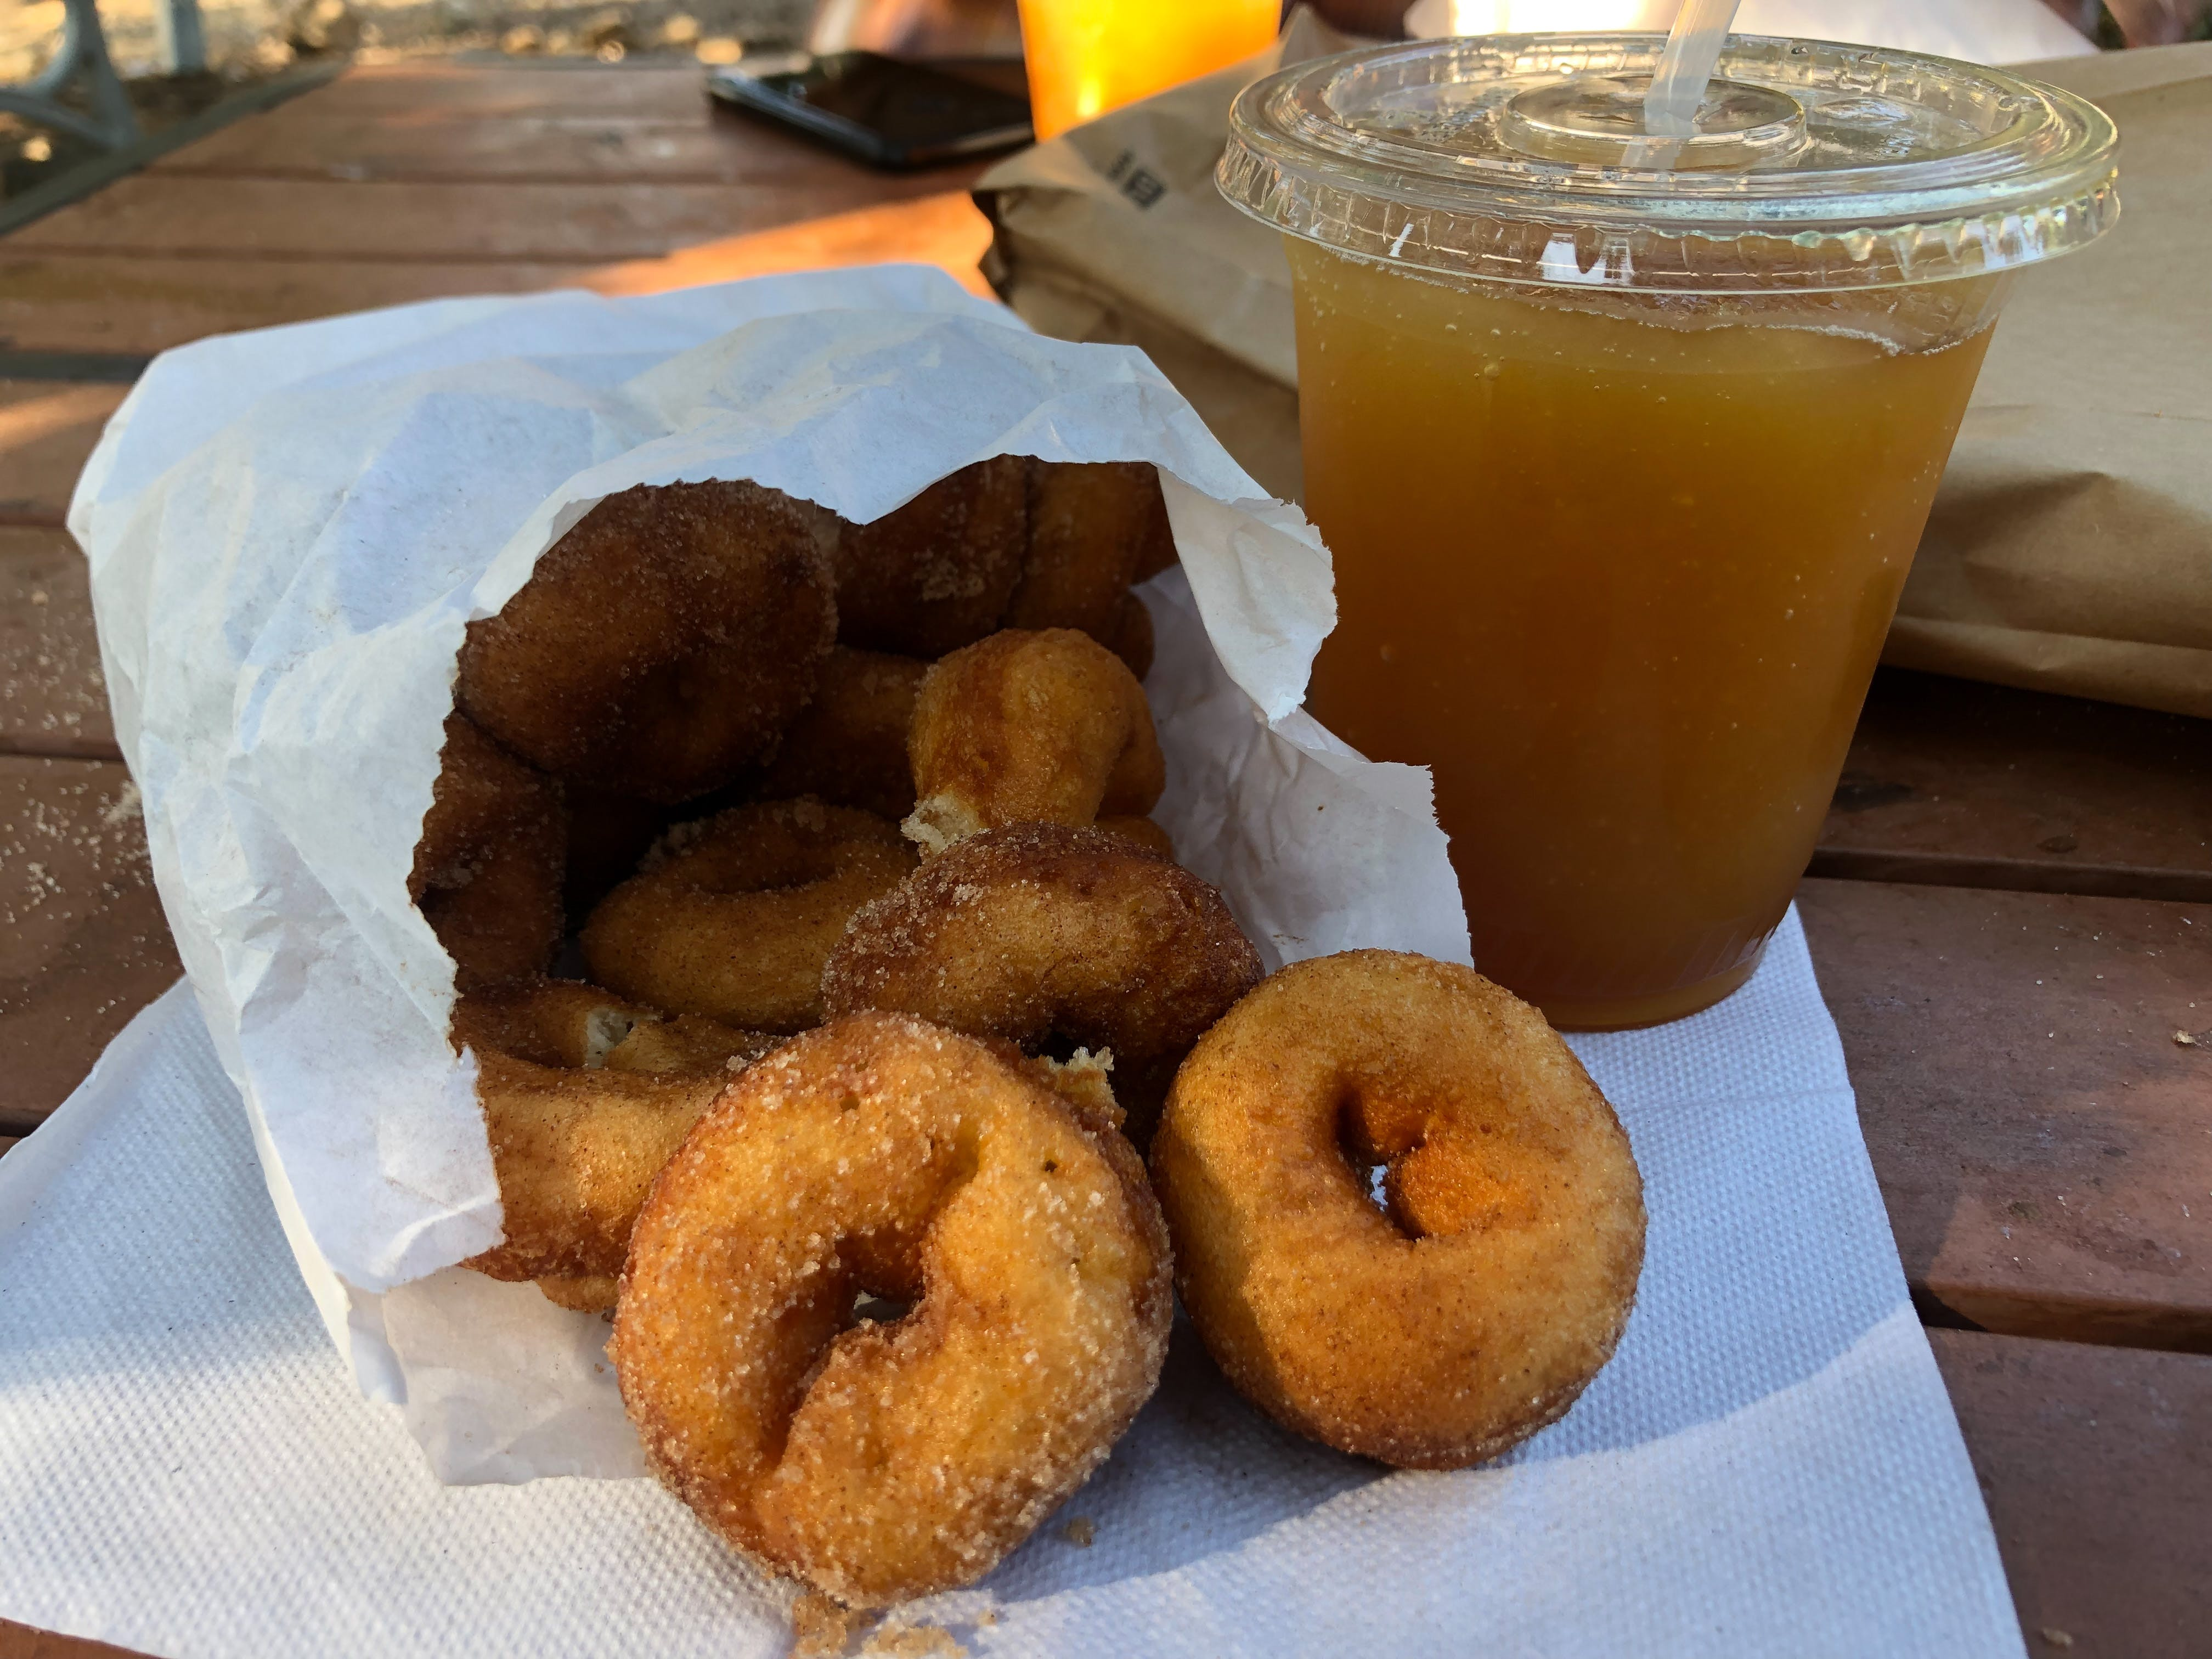 Apple cider donuts and apple cider slushy at Snowline Orchard in Yucaipa